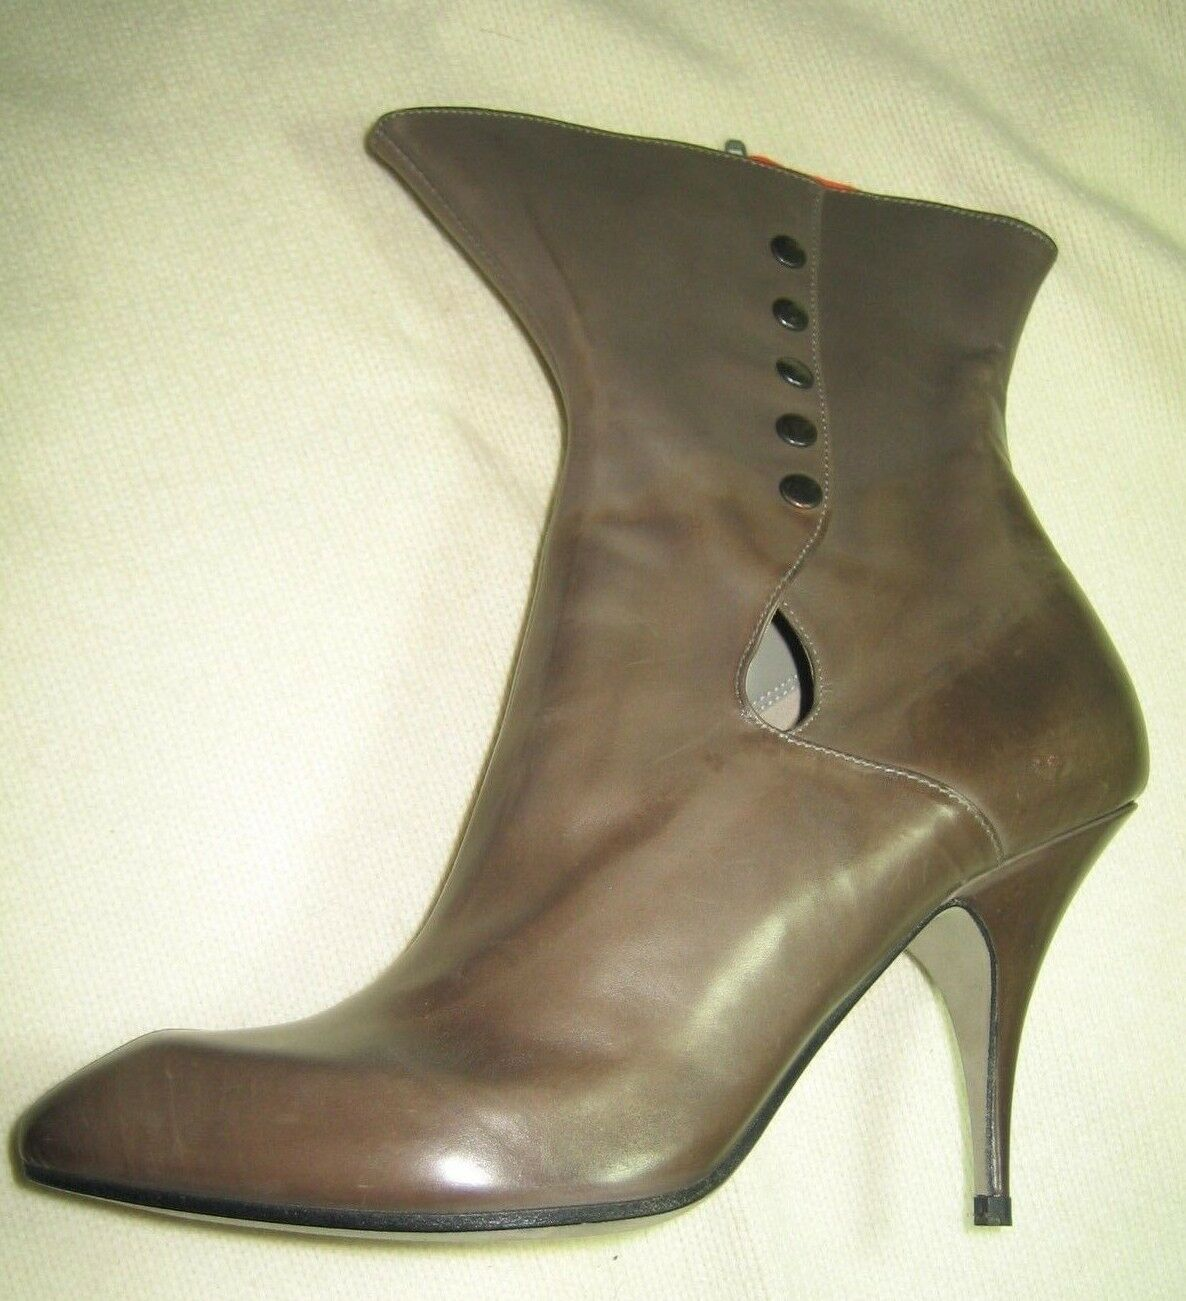 ITALIAN LEATHER BOOTIES BY STEPHEN VENEZIA MID-CALF SIDE BUTTONS 37 CHIC